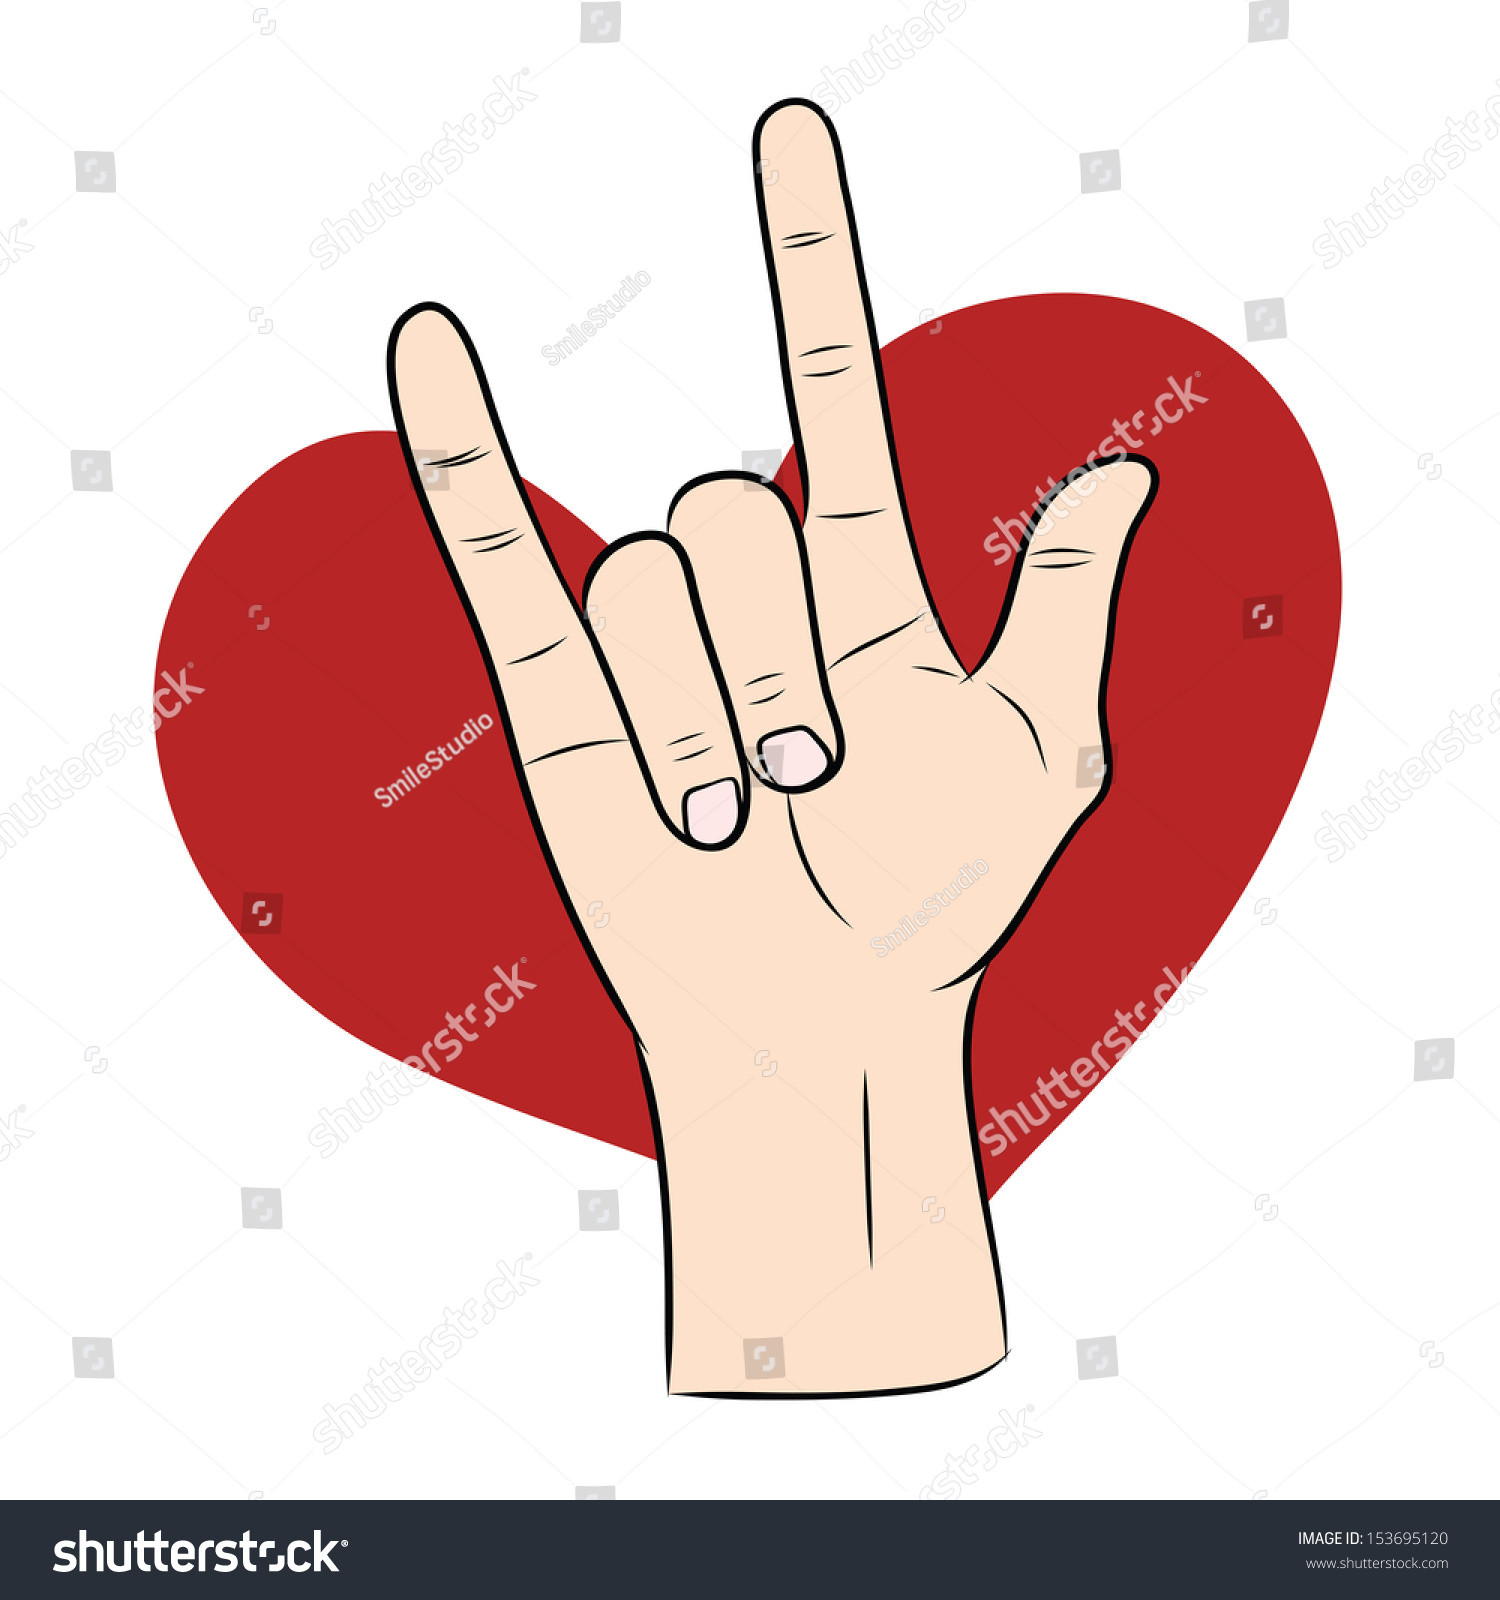 Red Heart with Love Luxury Love Hand Sign Red Heart Stock Vector Shutterstock Of Red Heart with Love Fresh Love Heart Impremedia